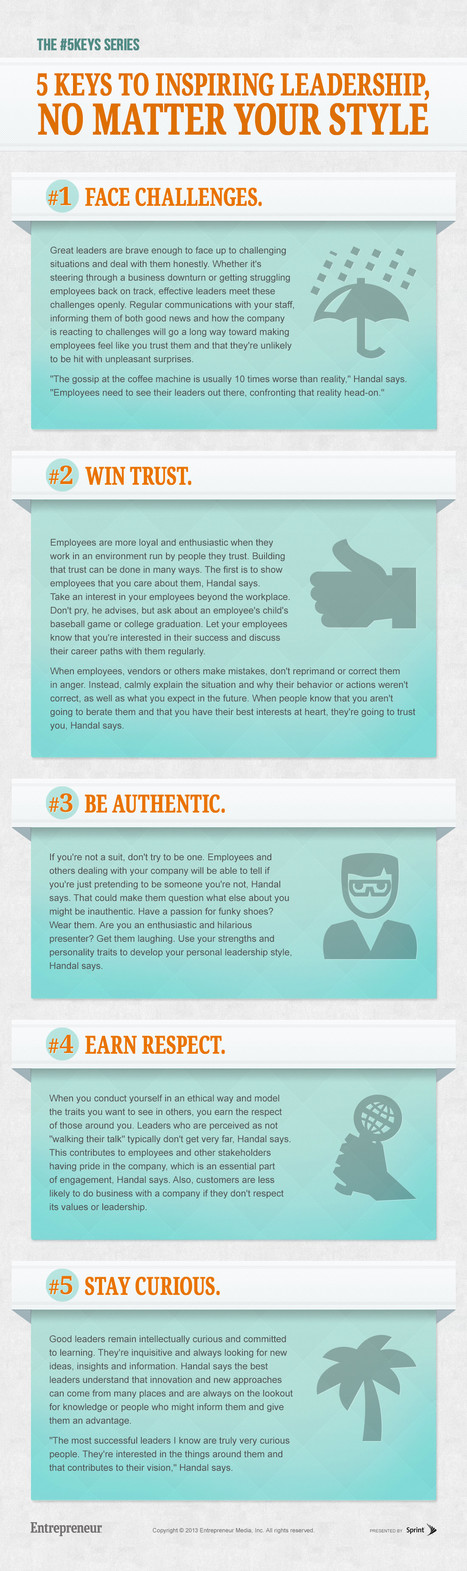 5 Keys to Inspiring Leadership, No Matter Your Style [Infographic] | Metawriting | Scoop.it